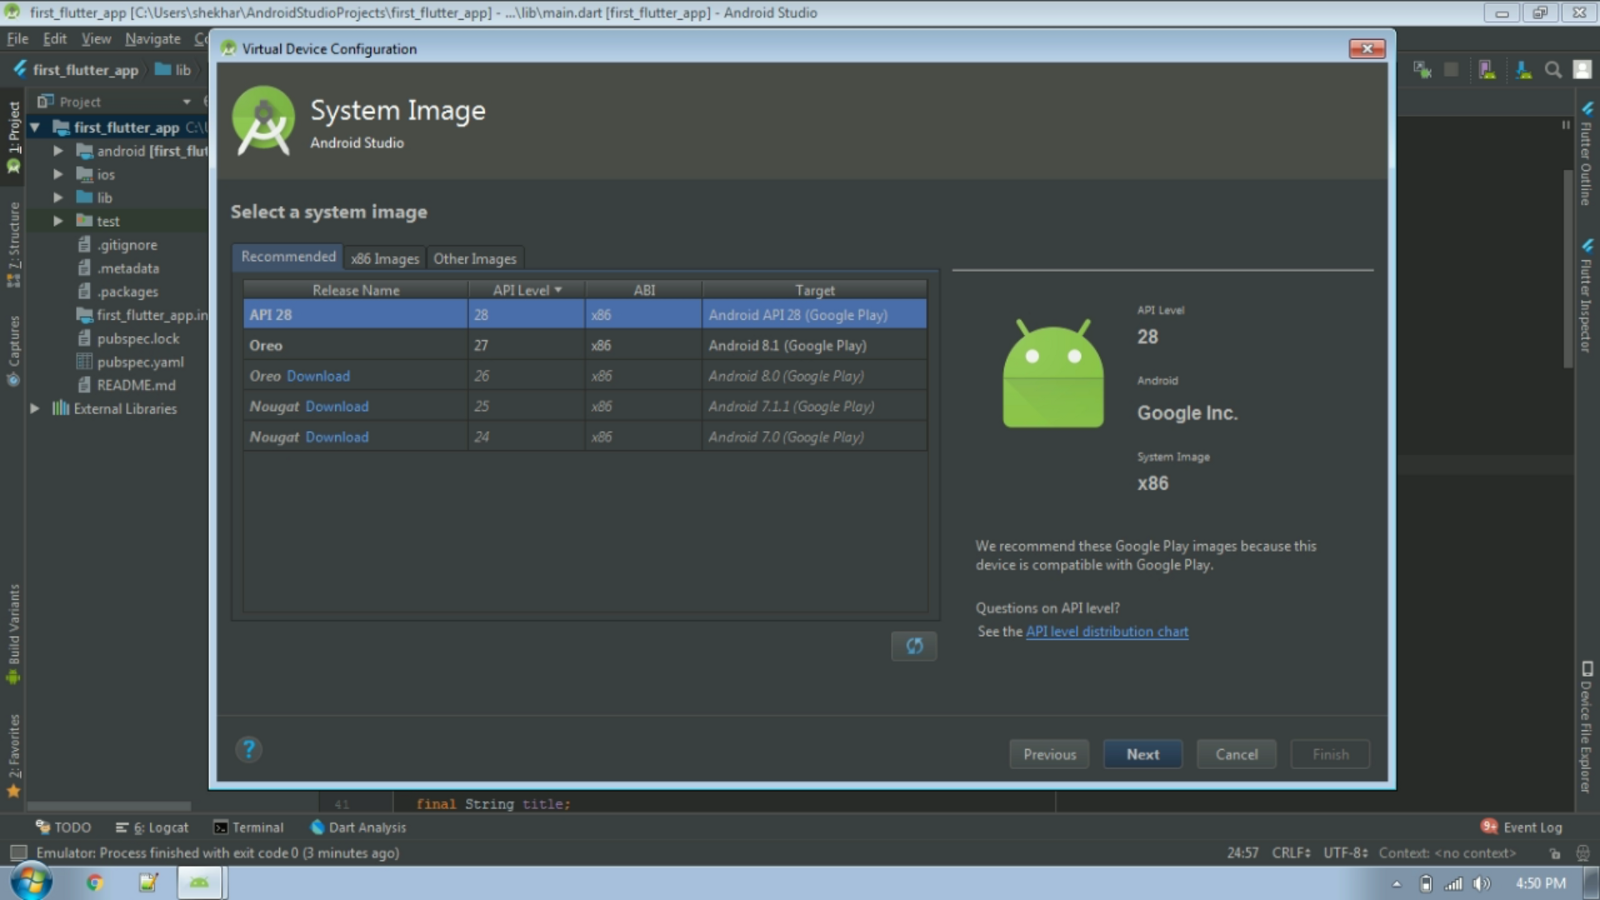 Create and Configure Android Virtual Device (AVD) in Android Studio